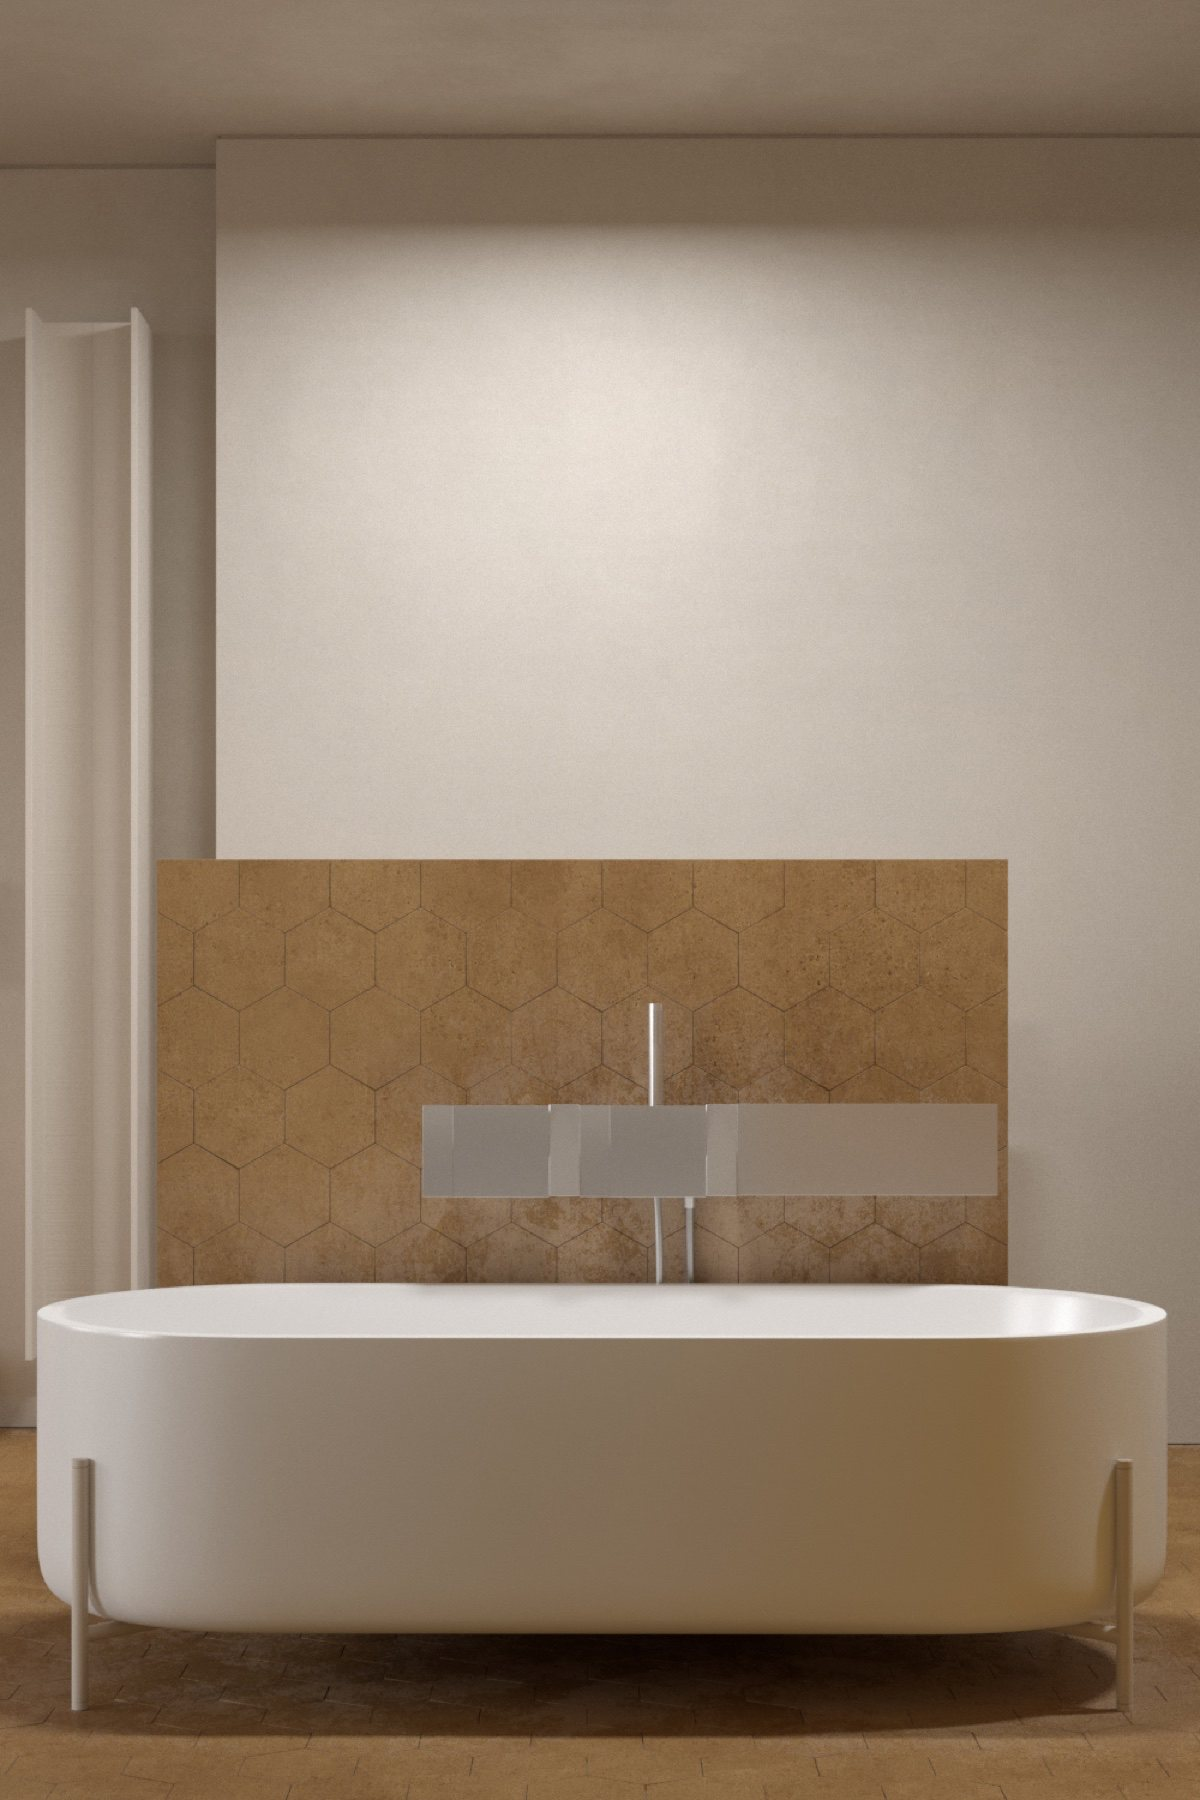 The bathroom is a honeycomb hive, with mustard hexagons peppering its space. Letting large white porcelain take centre stage, the bath wows as little grey spokes hold it up. Cylindrical washbasins add comfort in shape, while eggshell wall fixtures hold amenities with sophistication. Simple round ceiling lights work with mirrors to add light, while honeycomb covers the space. A wooden trunk in the shower offers a simple place to rest.